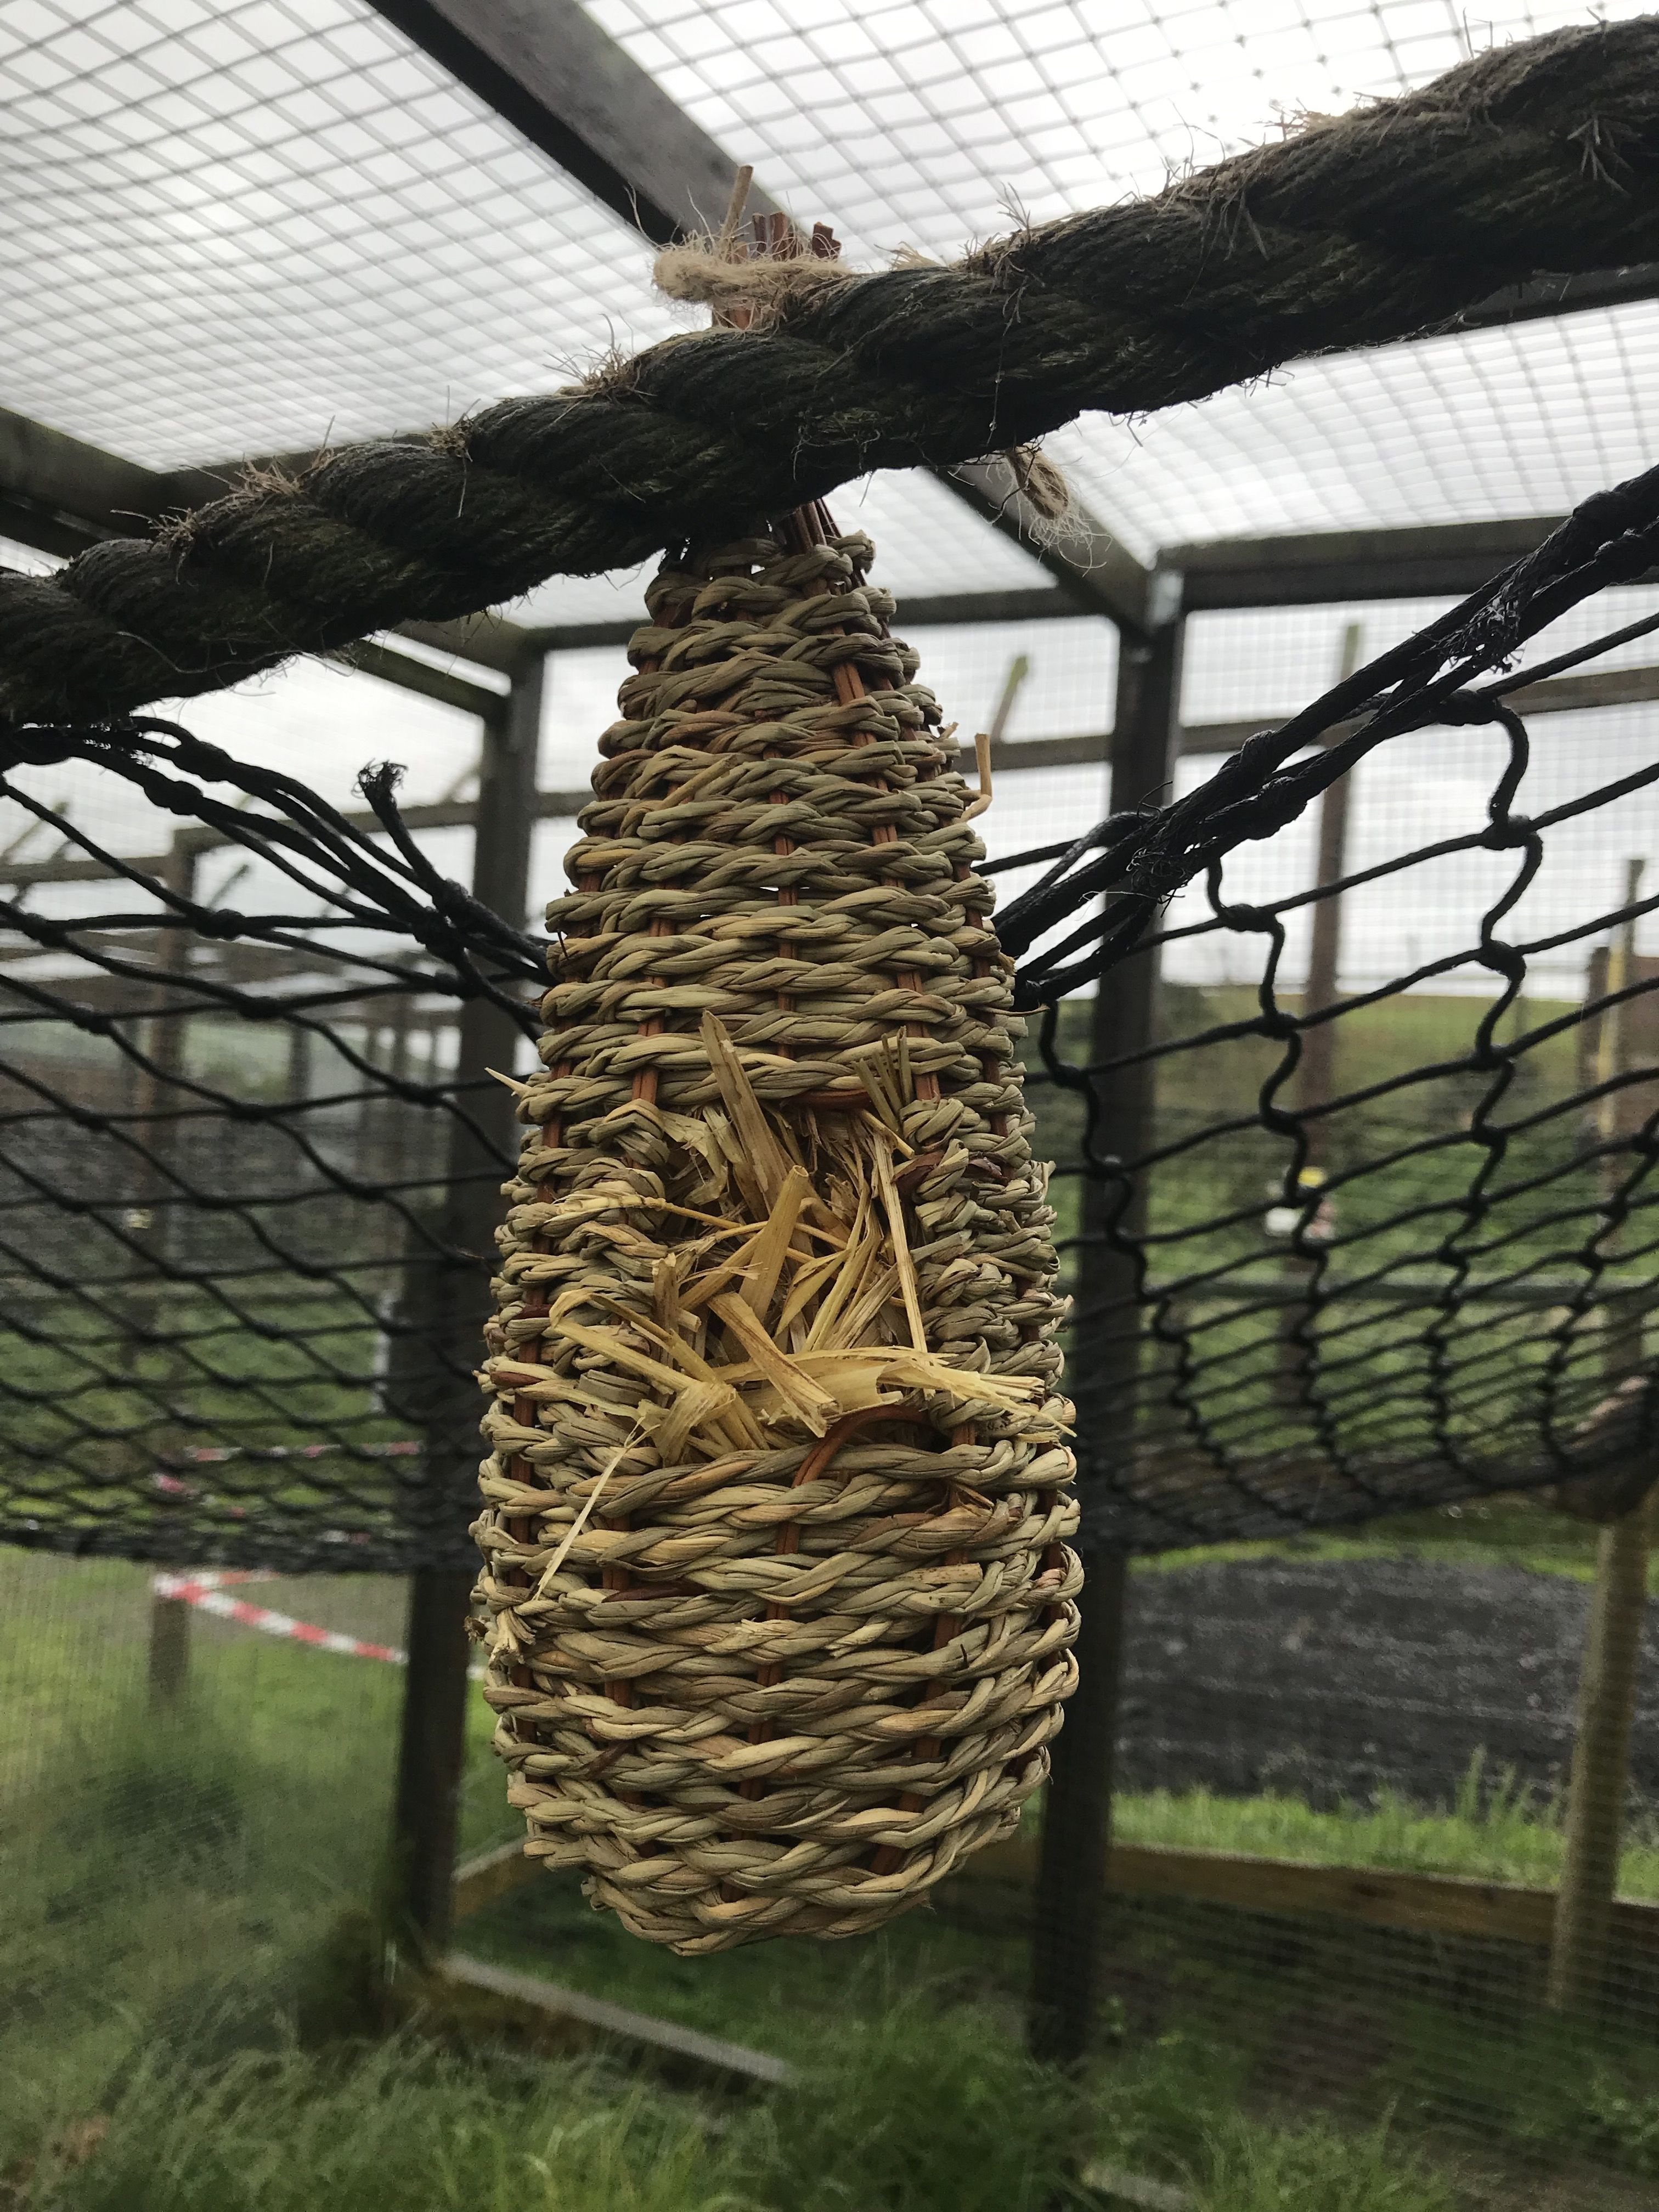 Woven bird nests had food inside and the openings blocked